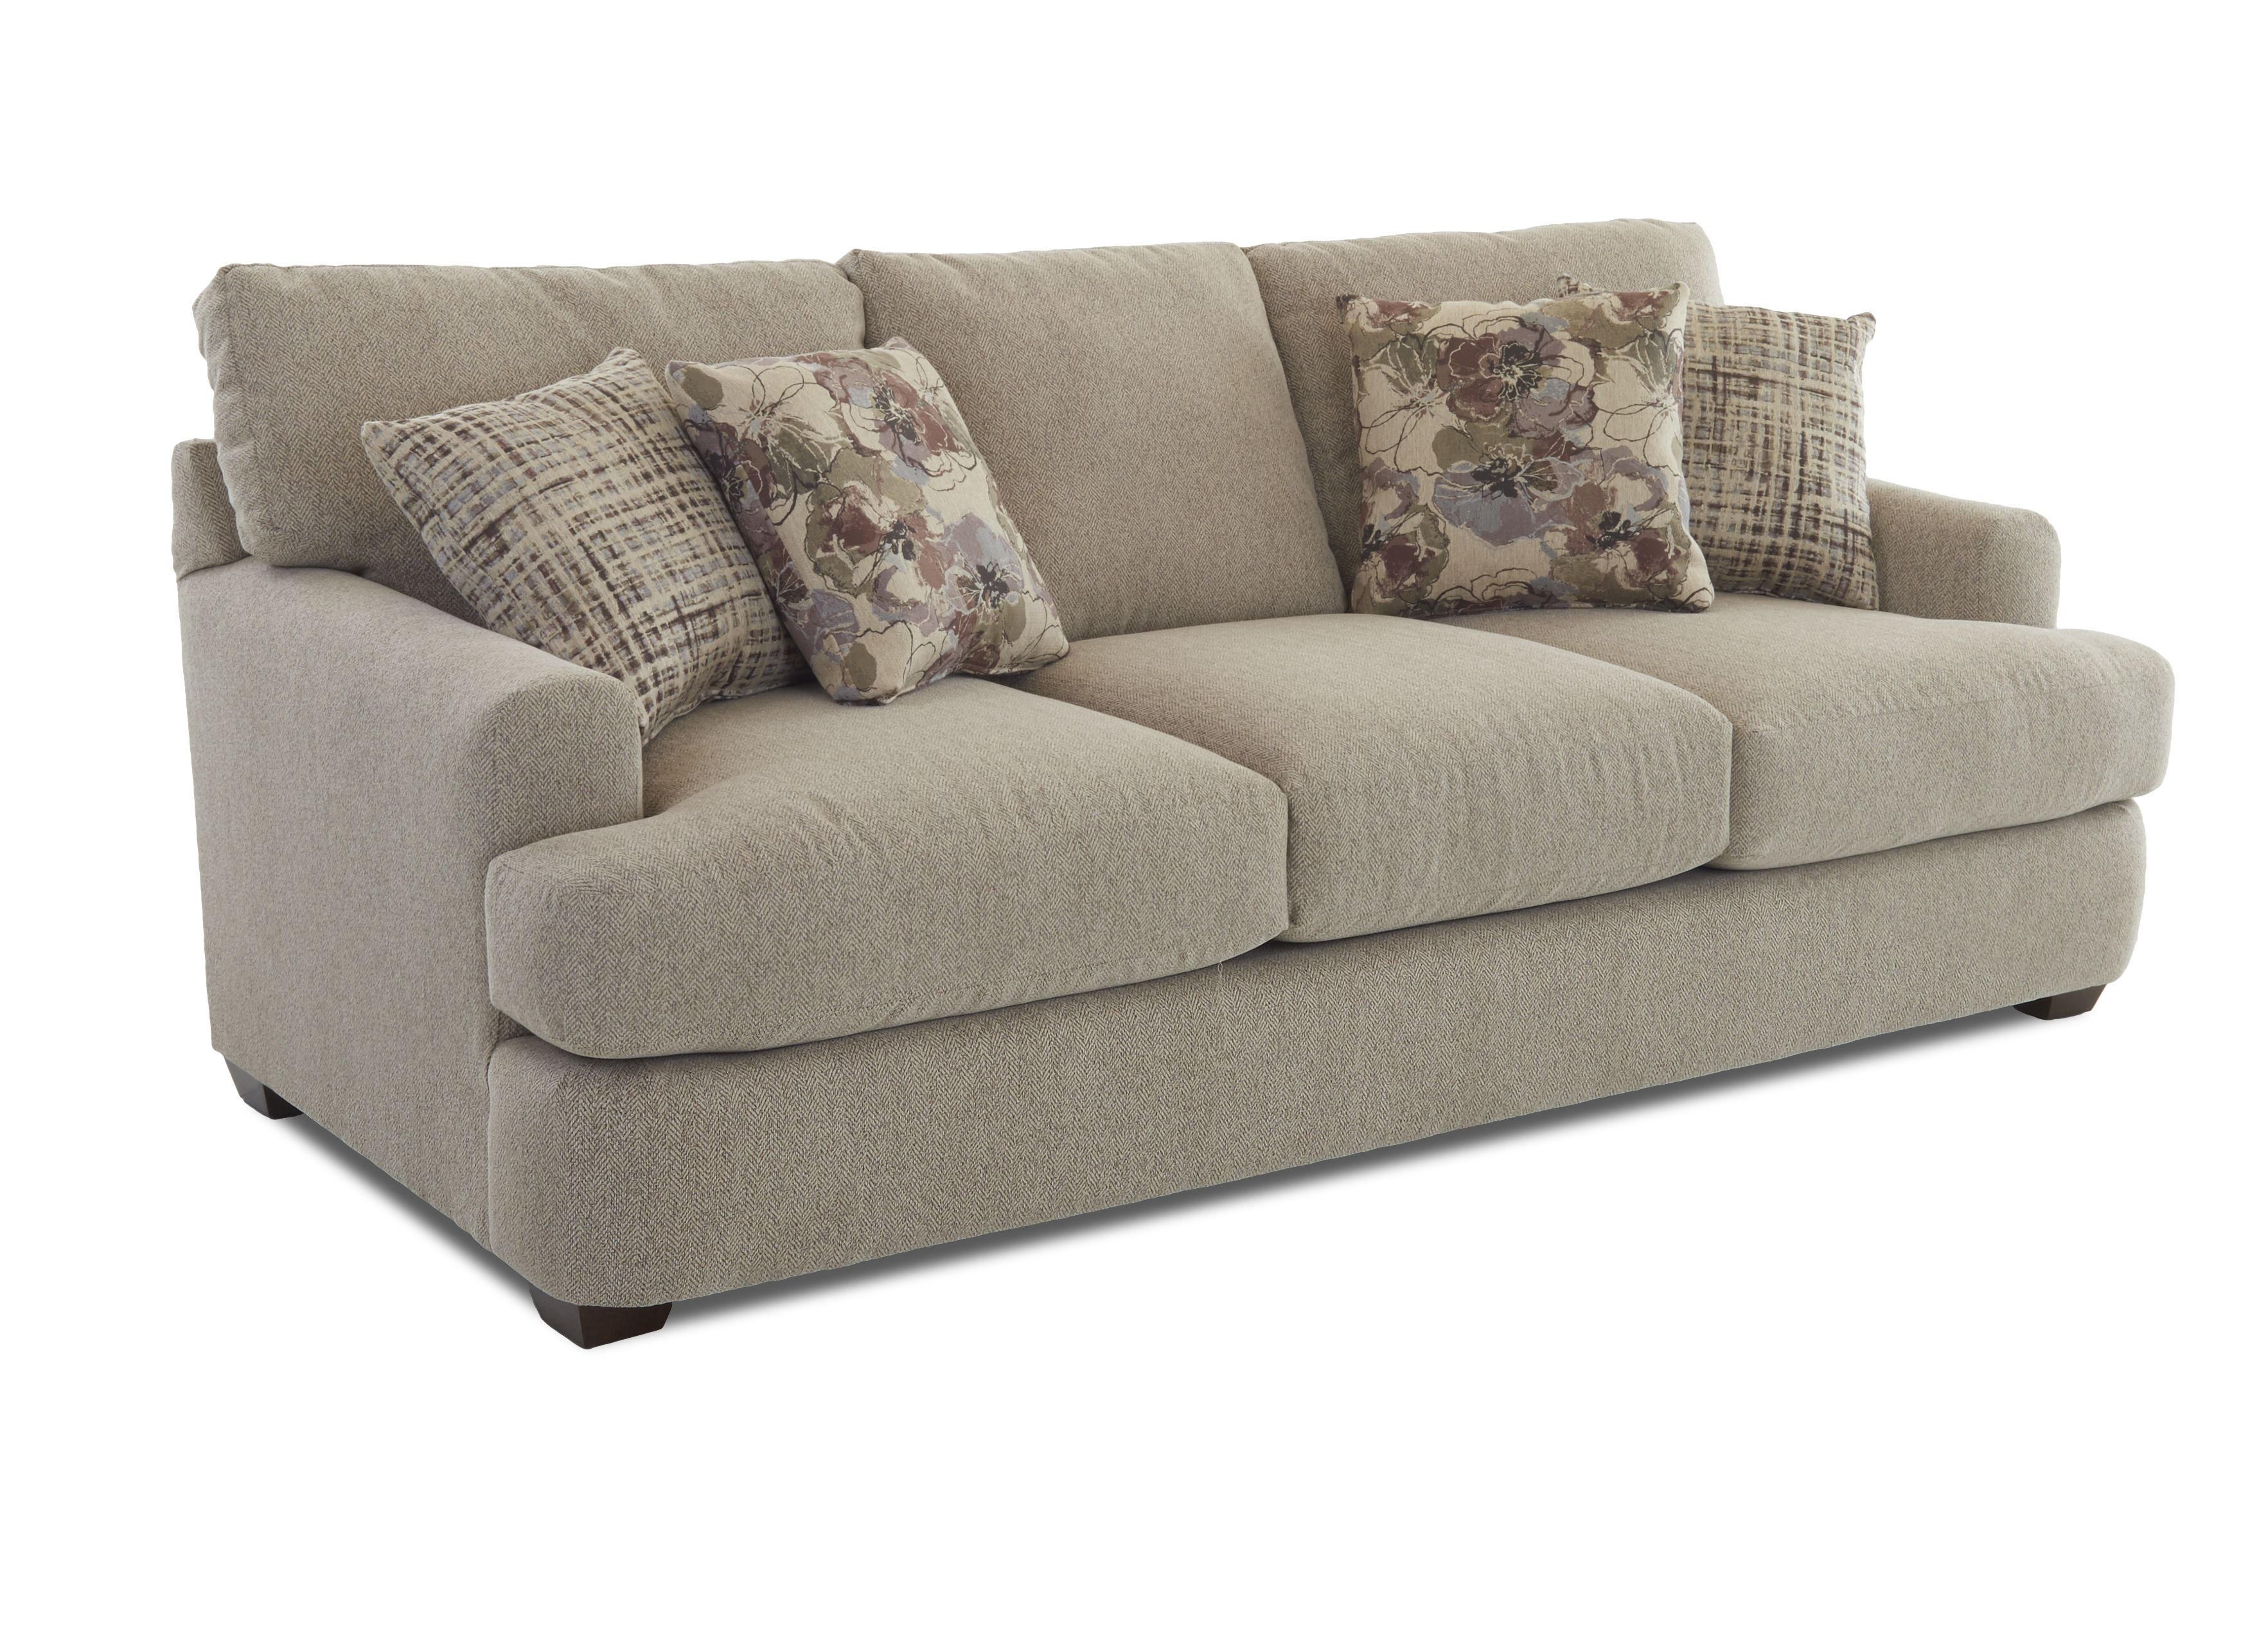 Pleasing Haynes K18400 Sofa Collection Hundreds Of Fabrics And Pdpeps Interior Chair Design Pdpepsorg